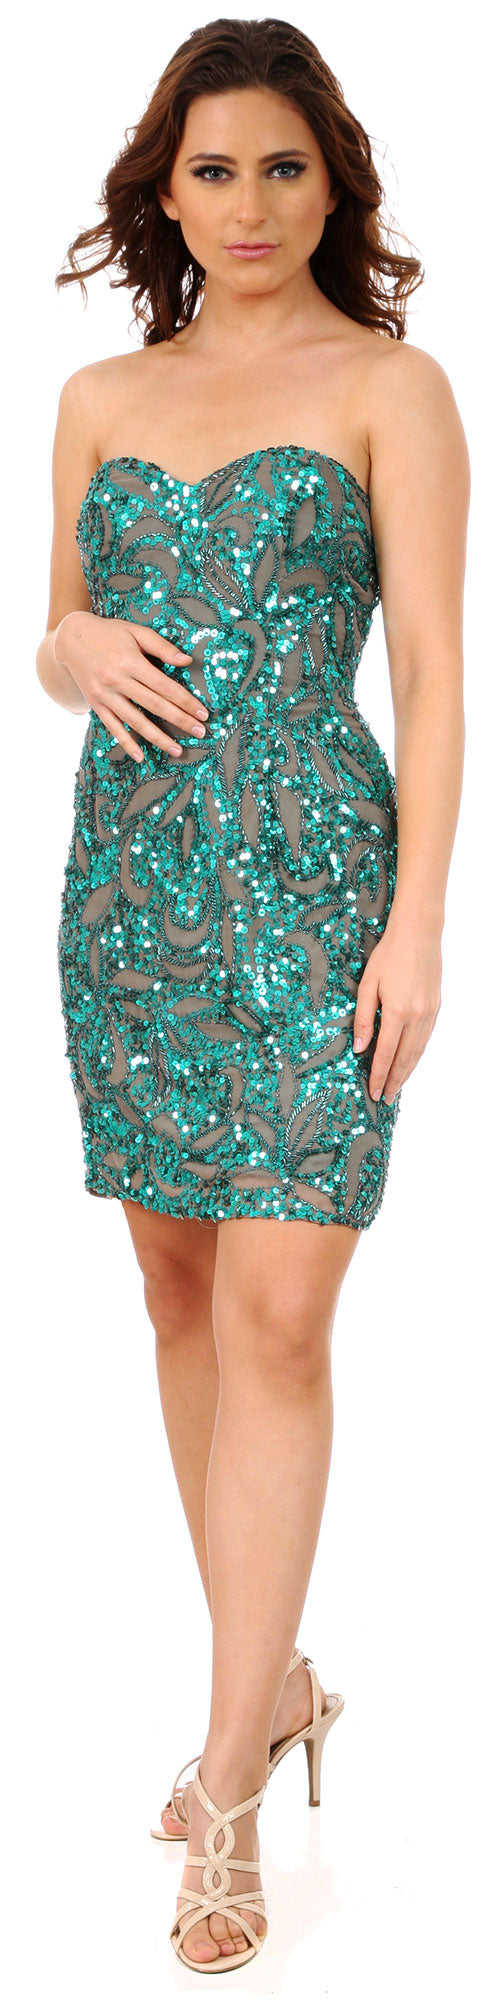 Image of Strapless Leaves Pattern Short Beaded Homecoming Party Dress in an alternative picture